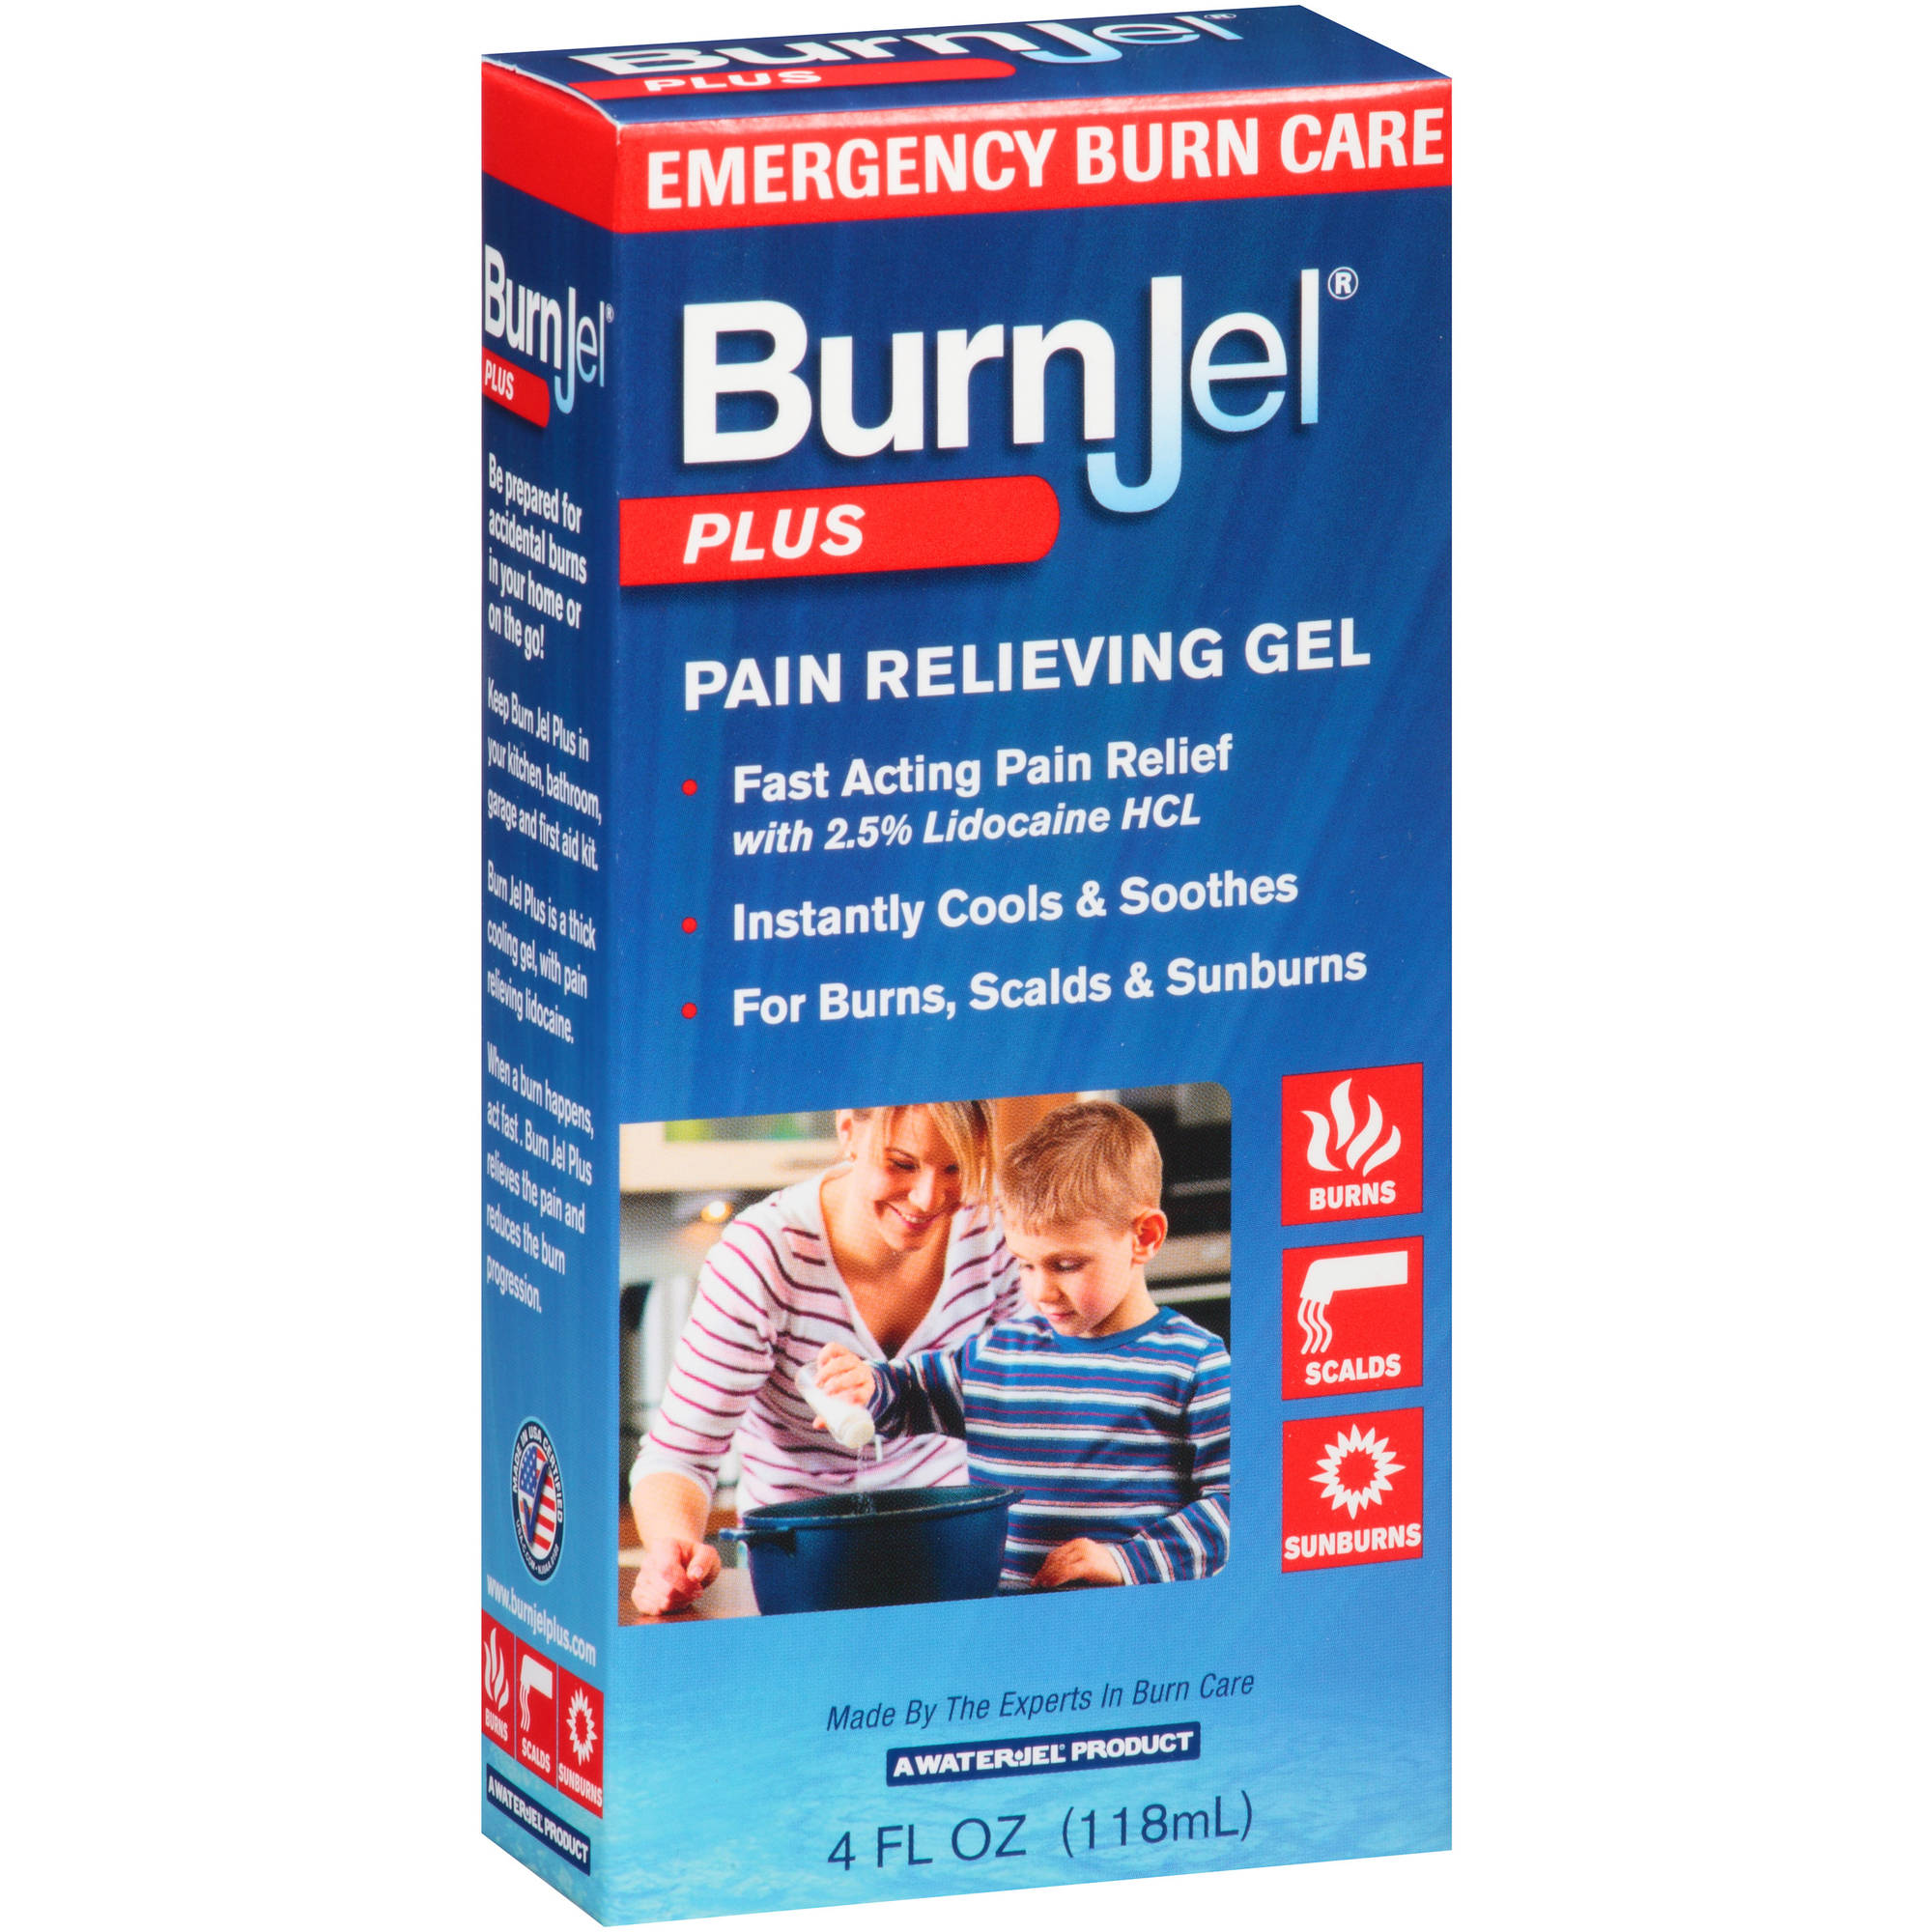 Water-Jel: Pain Relieving Lidocaine Hcl Burn Jel, 4 Fl Oz